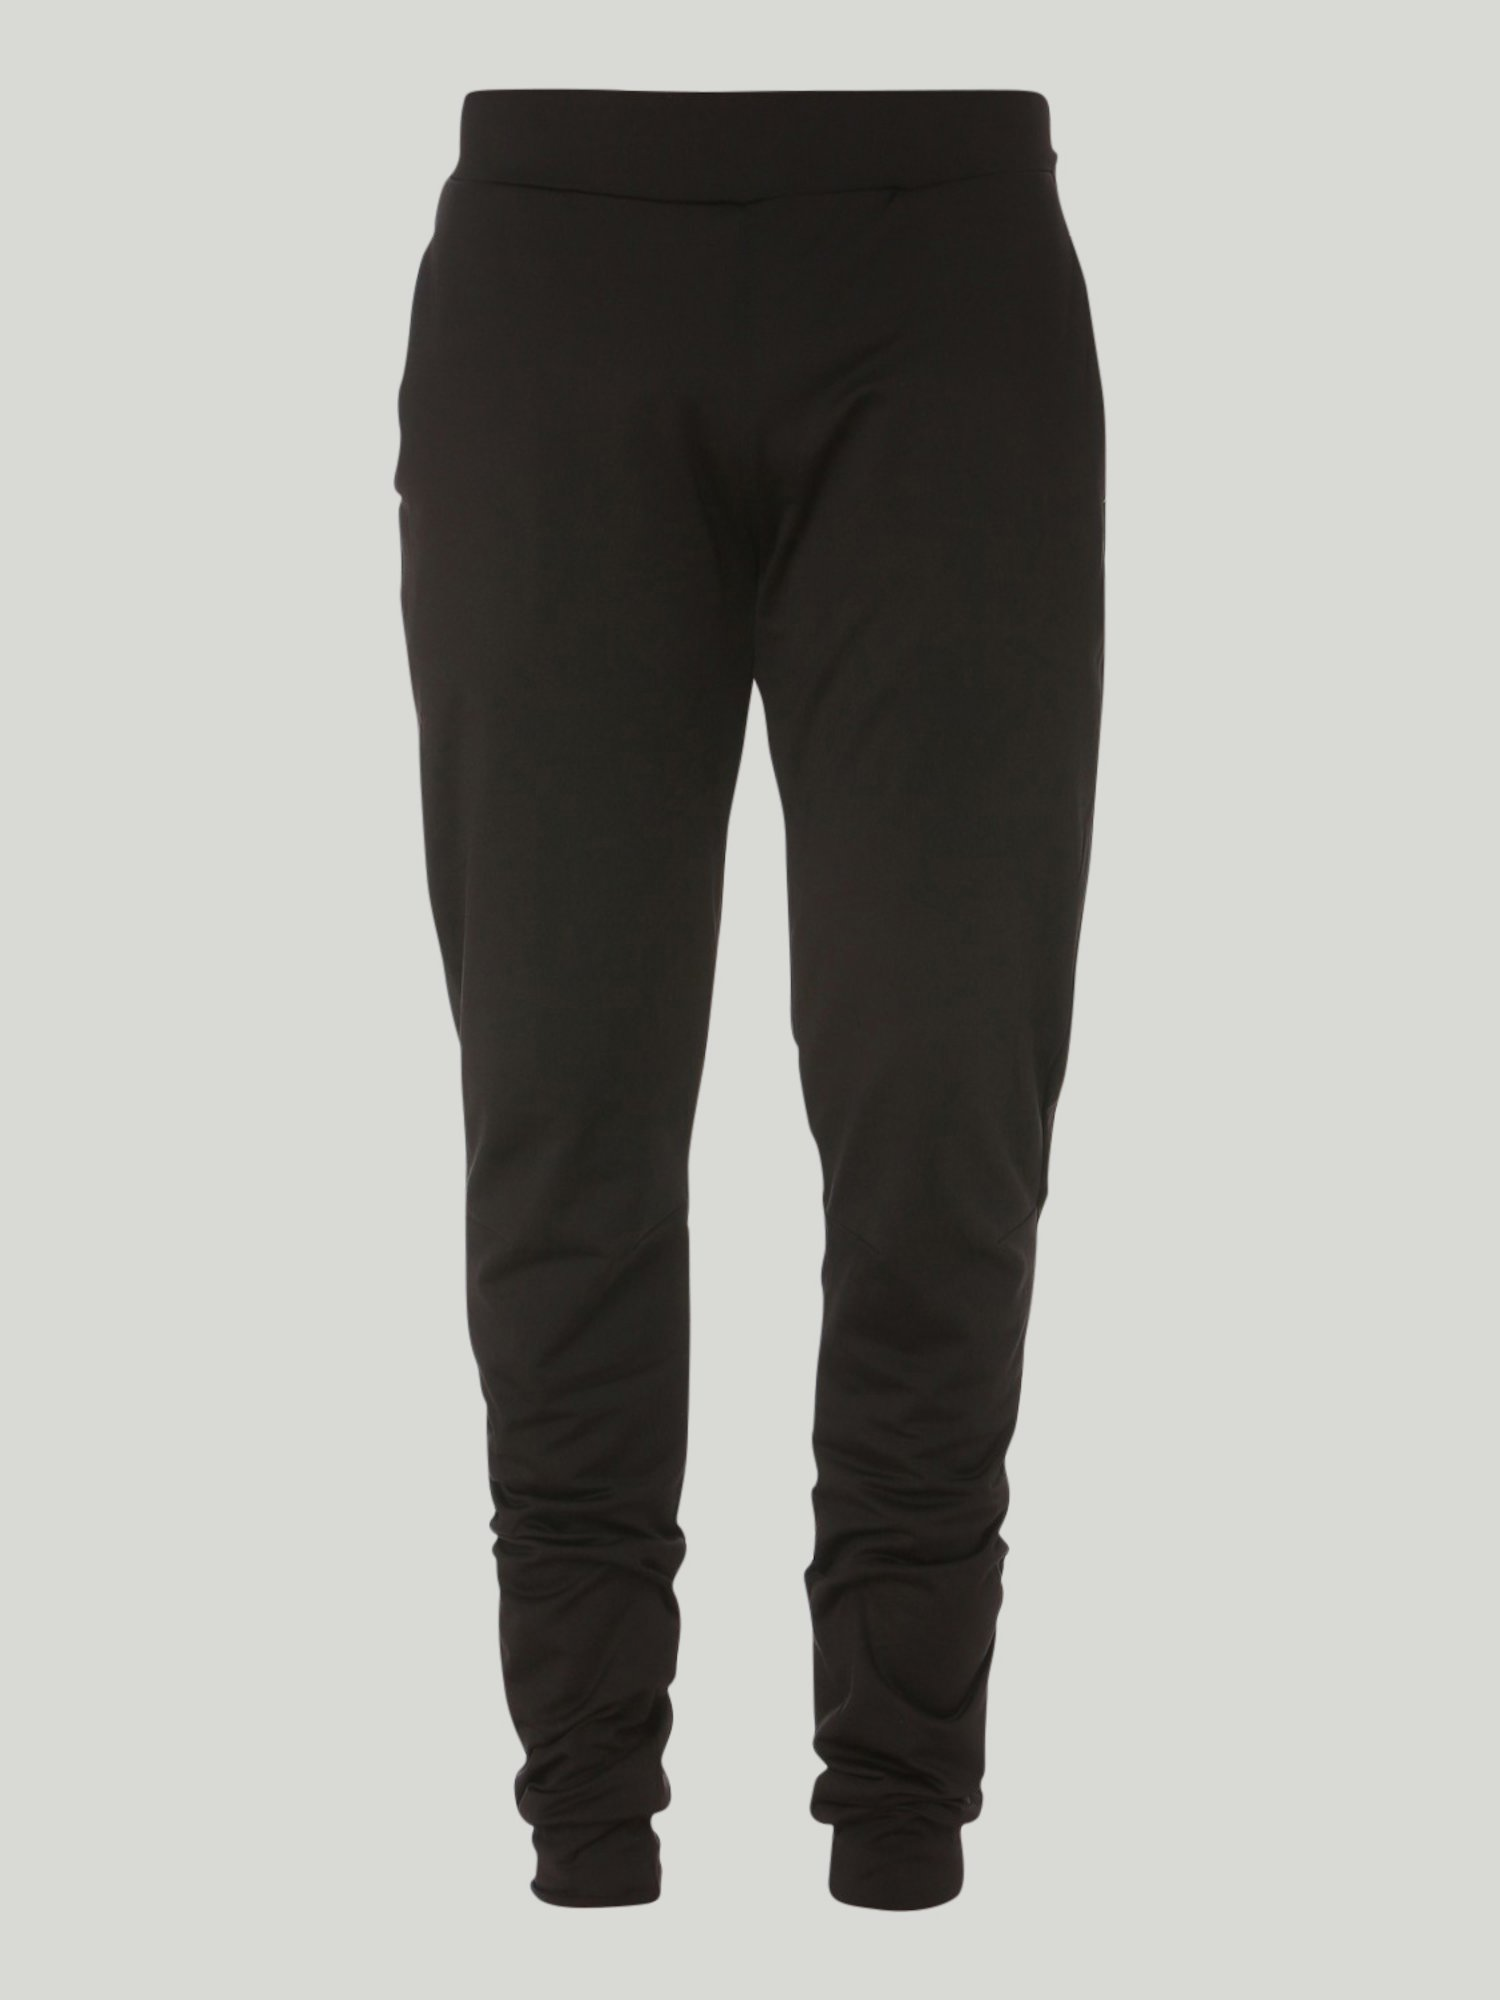 SWEATPANTS ROTUMA - Black